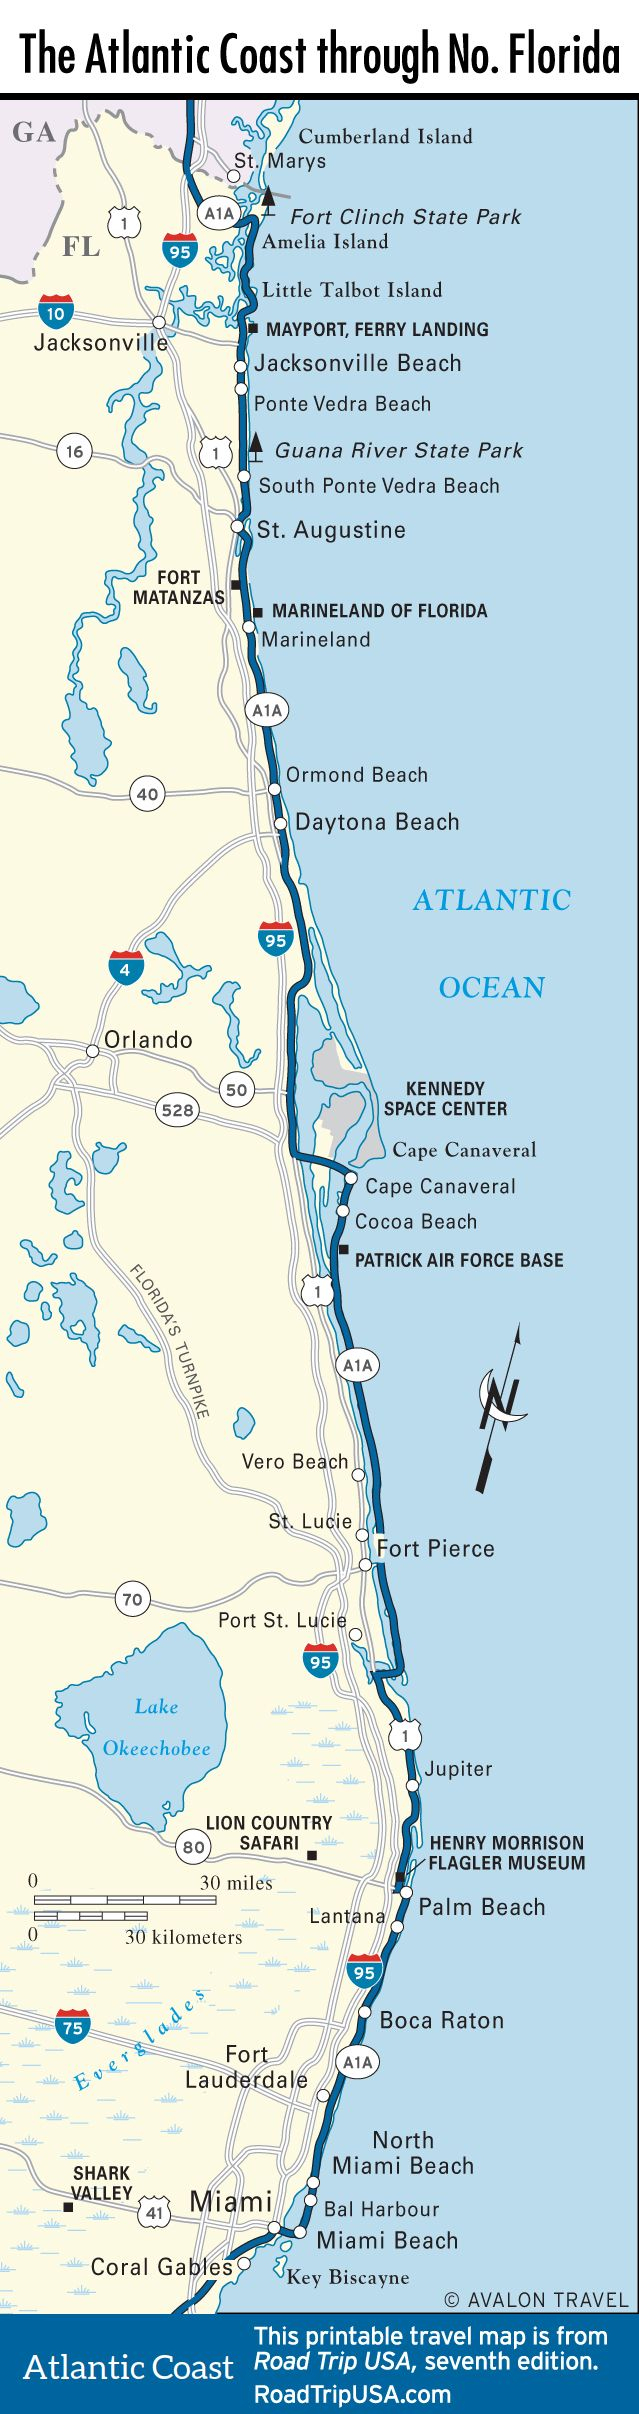 Map Of The Atlantic Coast Through Northern Florida. | Florida A1A - Florida Atlantic Coast Map